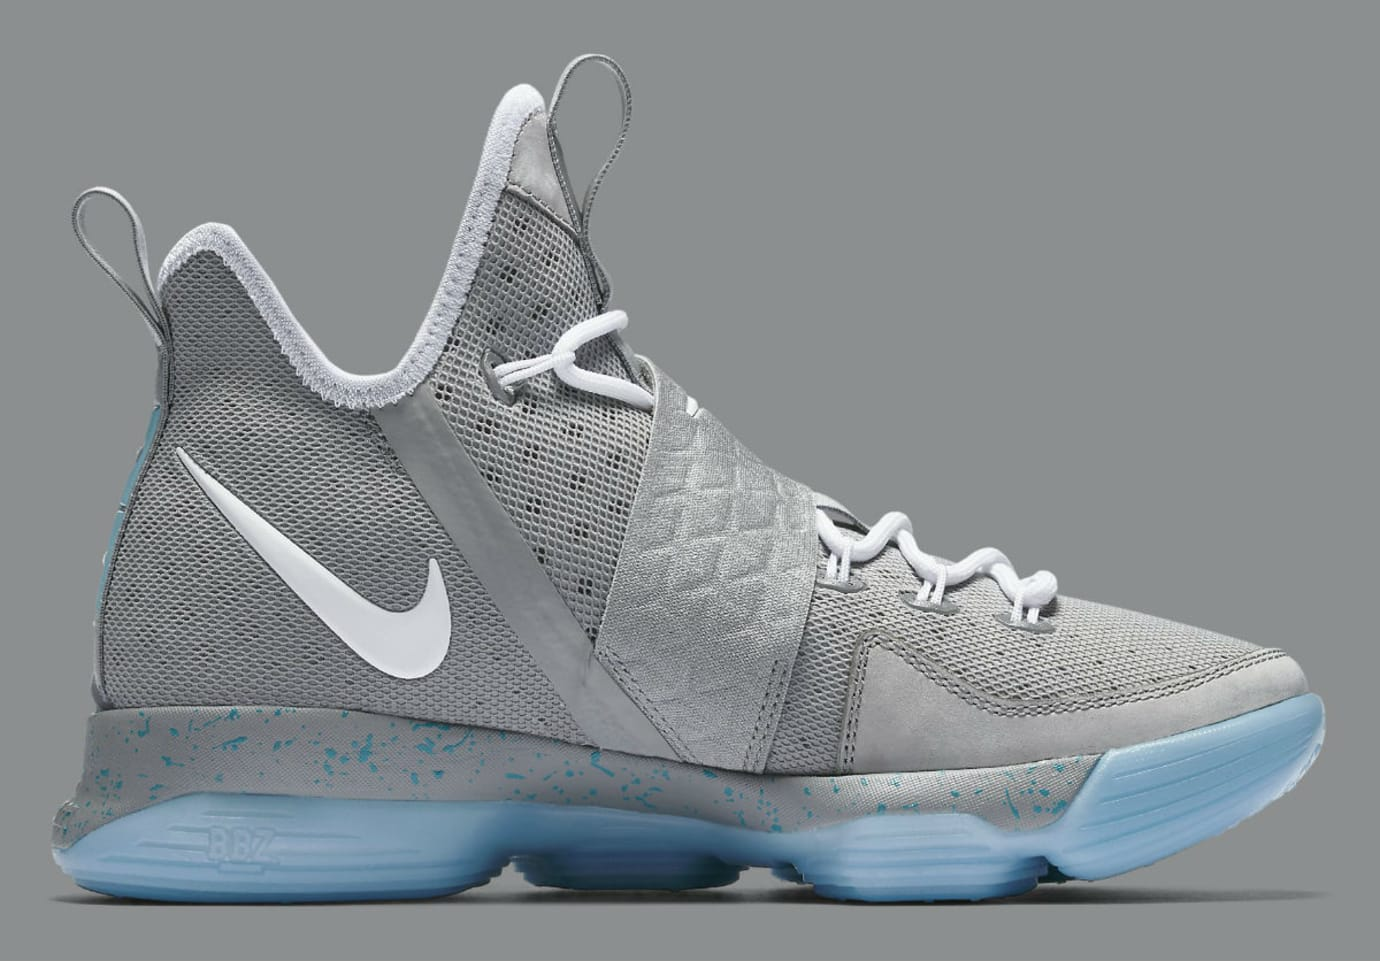 Nike LeBron 14 Mag McFly Release Date Medial 852405-005